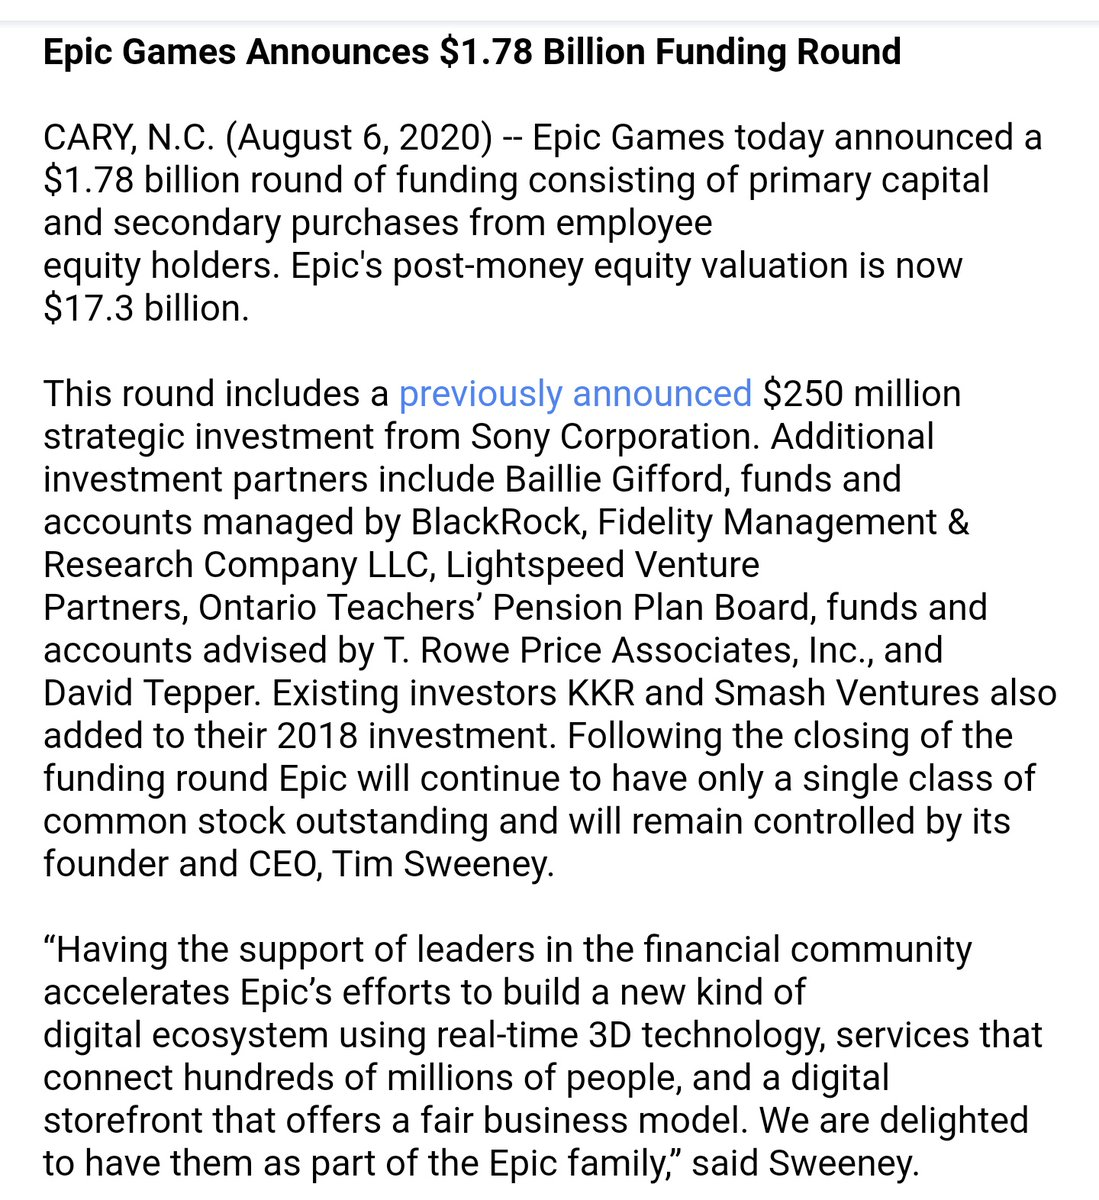 Official announcement of Epic Games fundraising and new investors